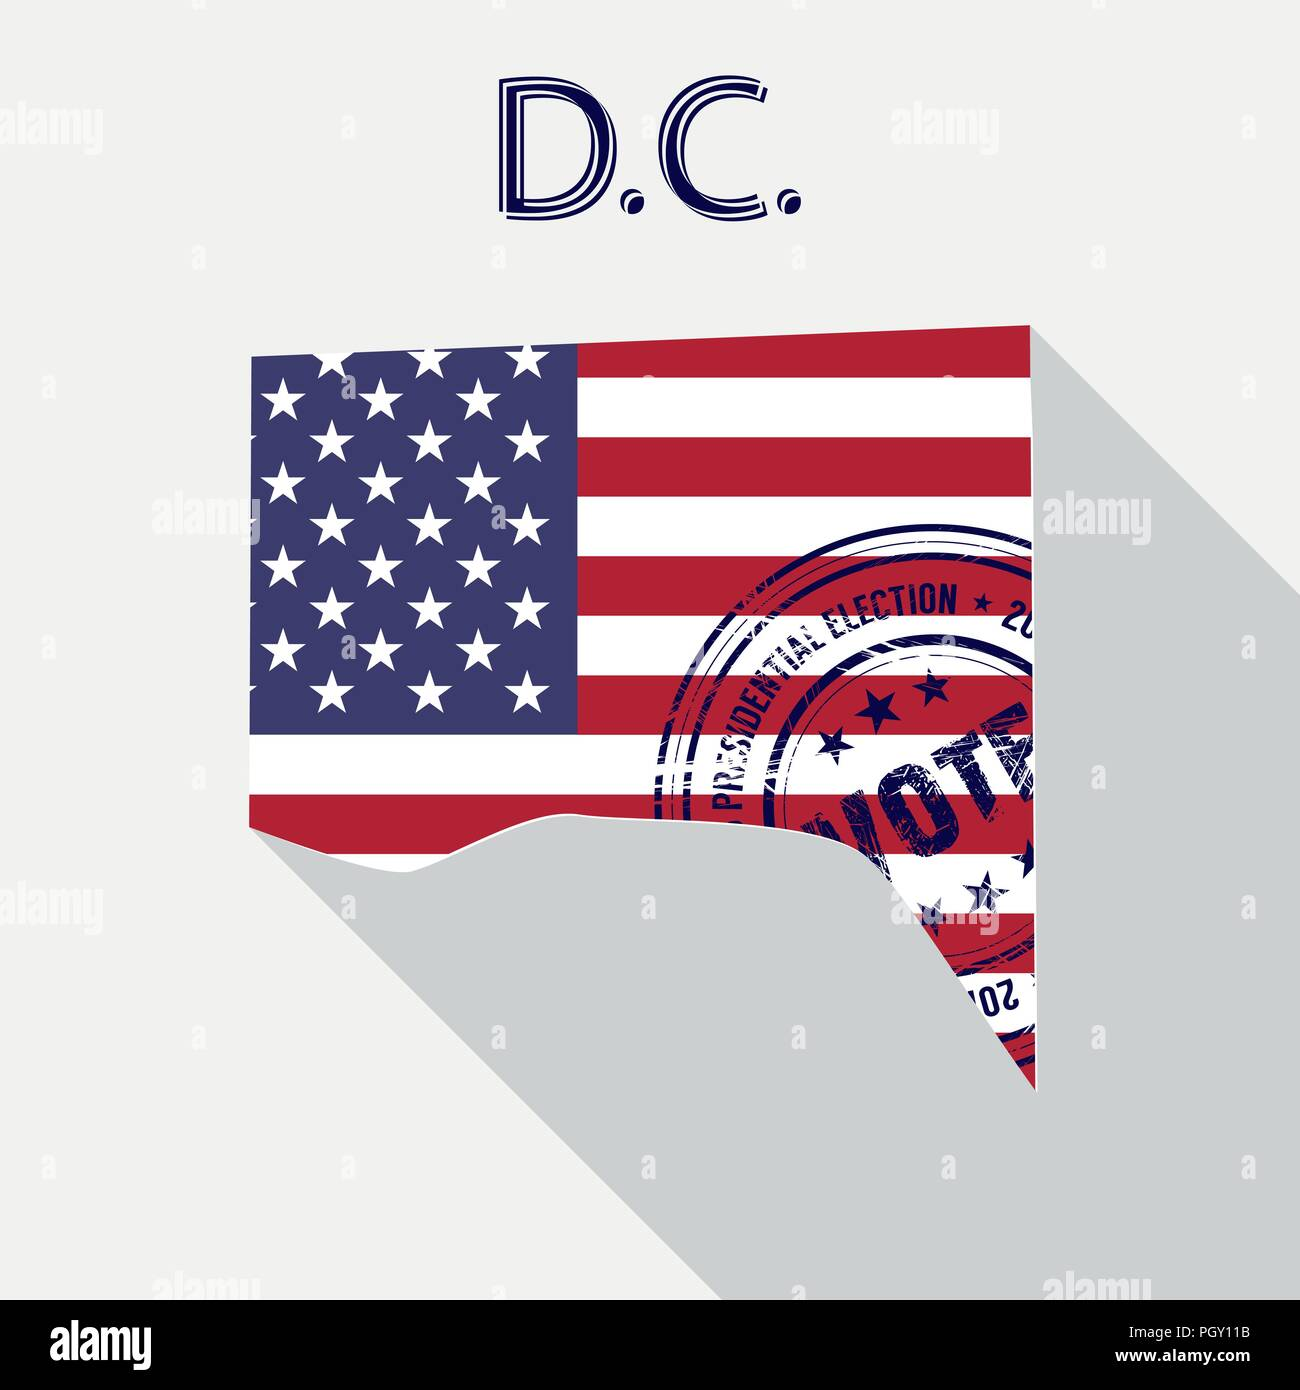 State of Washington, D.C. vector graphic map with flag and presidential day vote stamp - Stock Vector